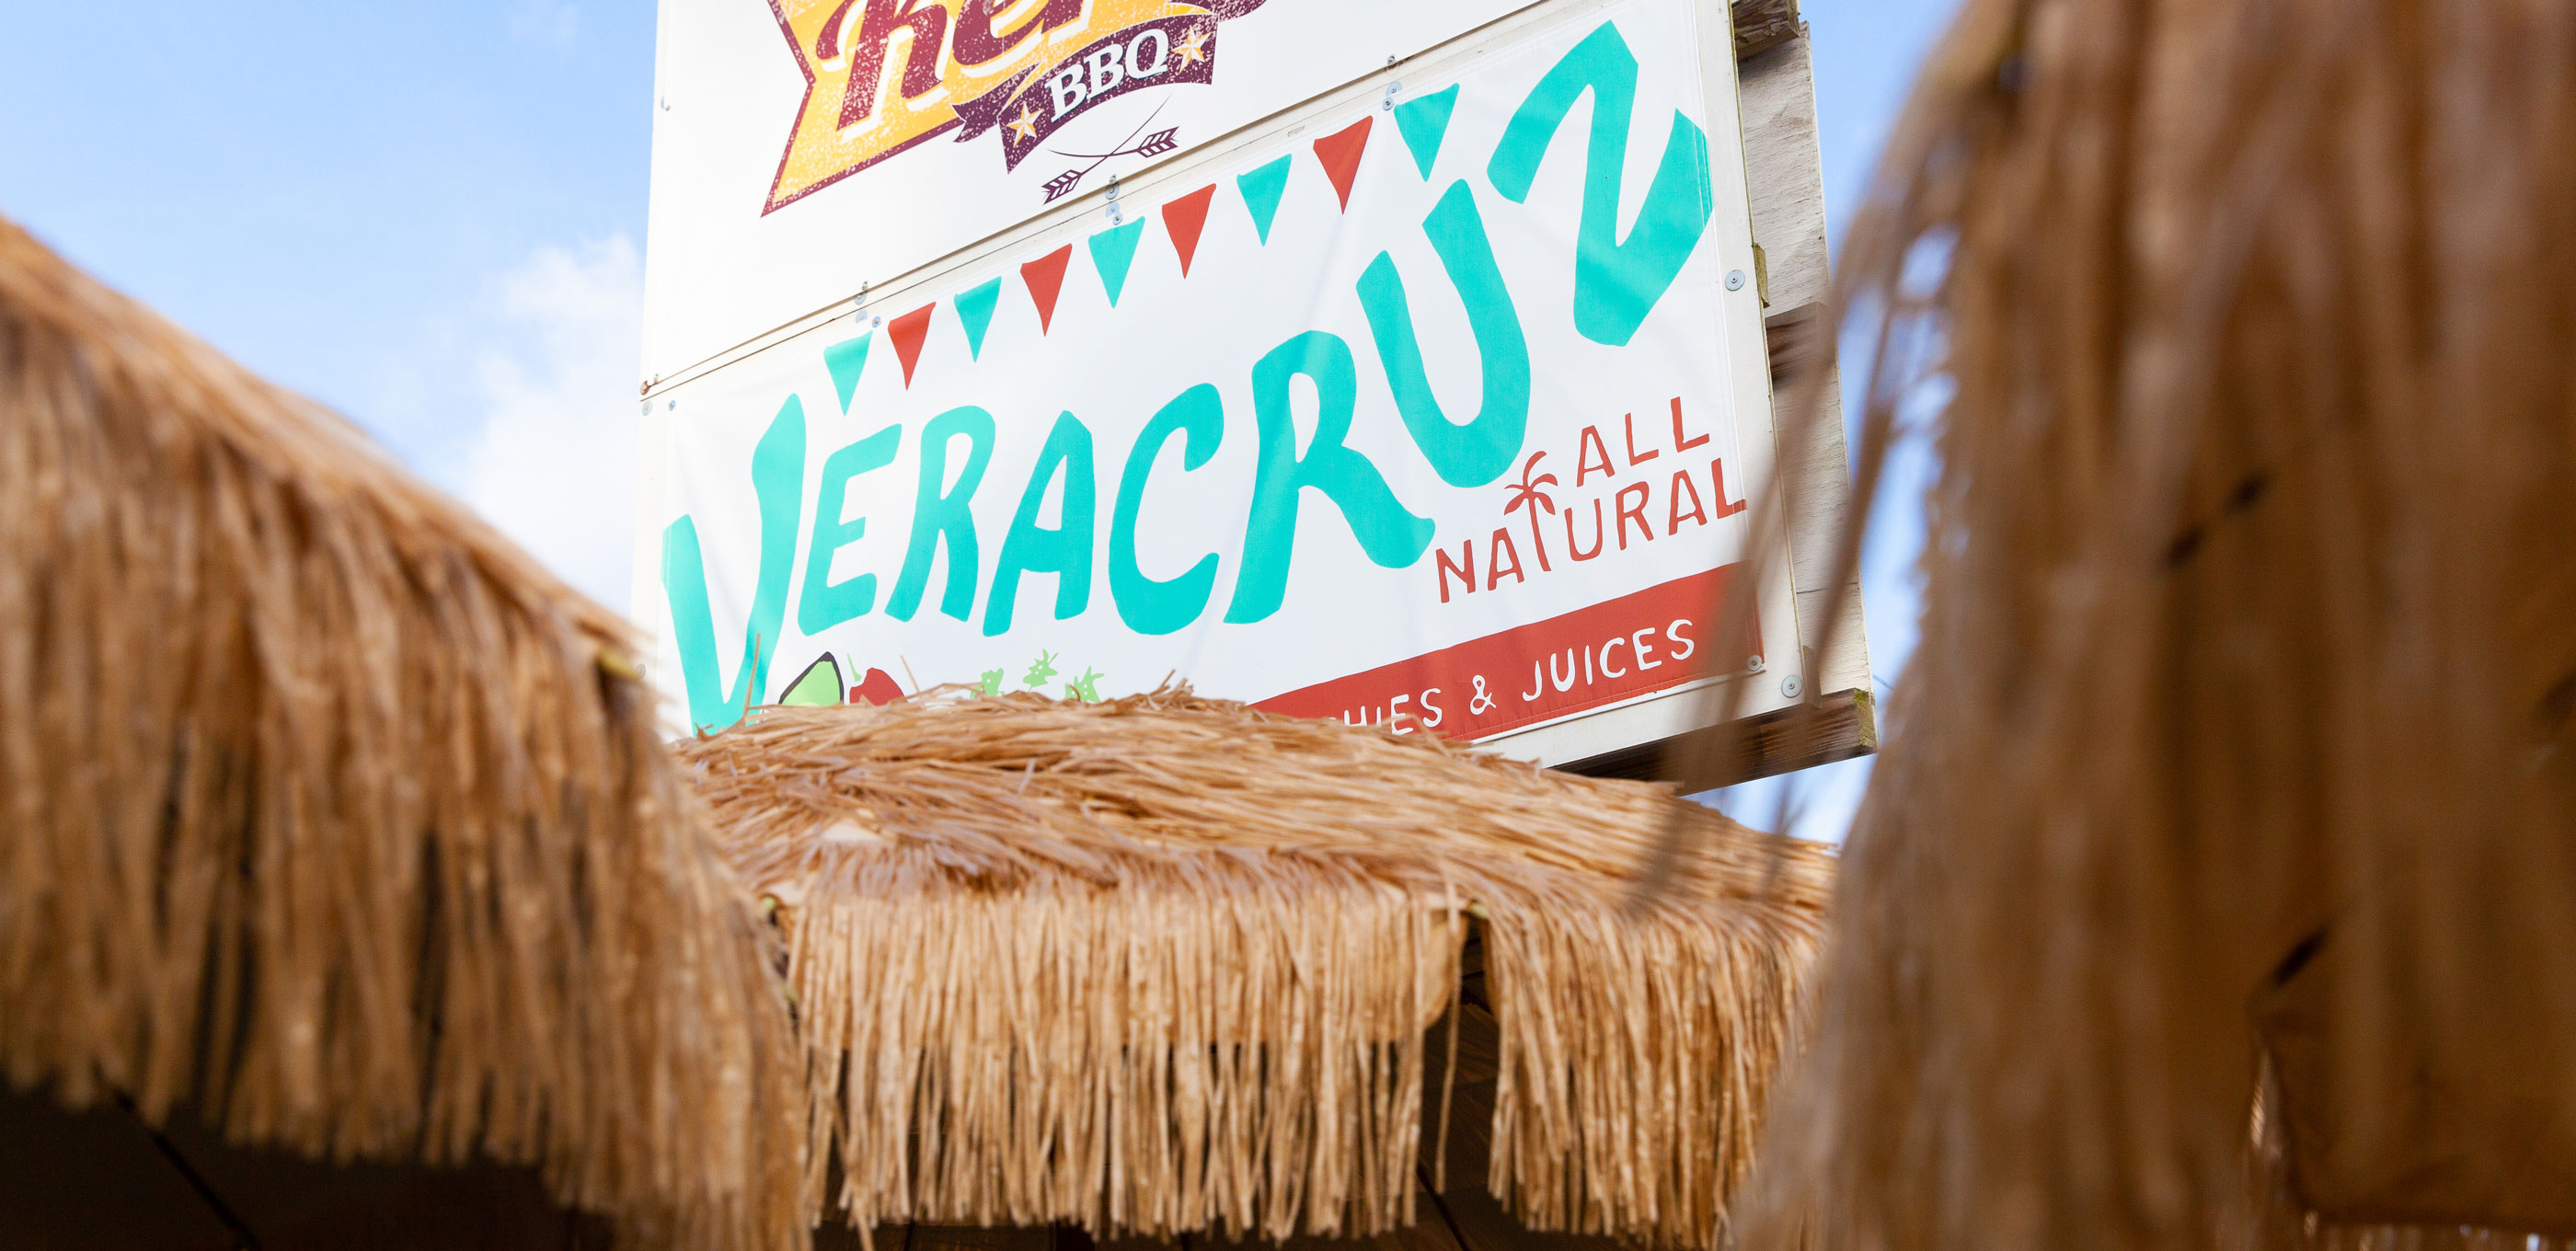 Veracruz All Natural – Austin, TX